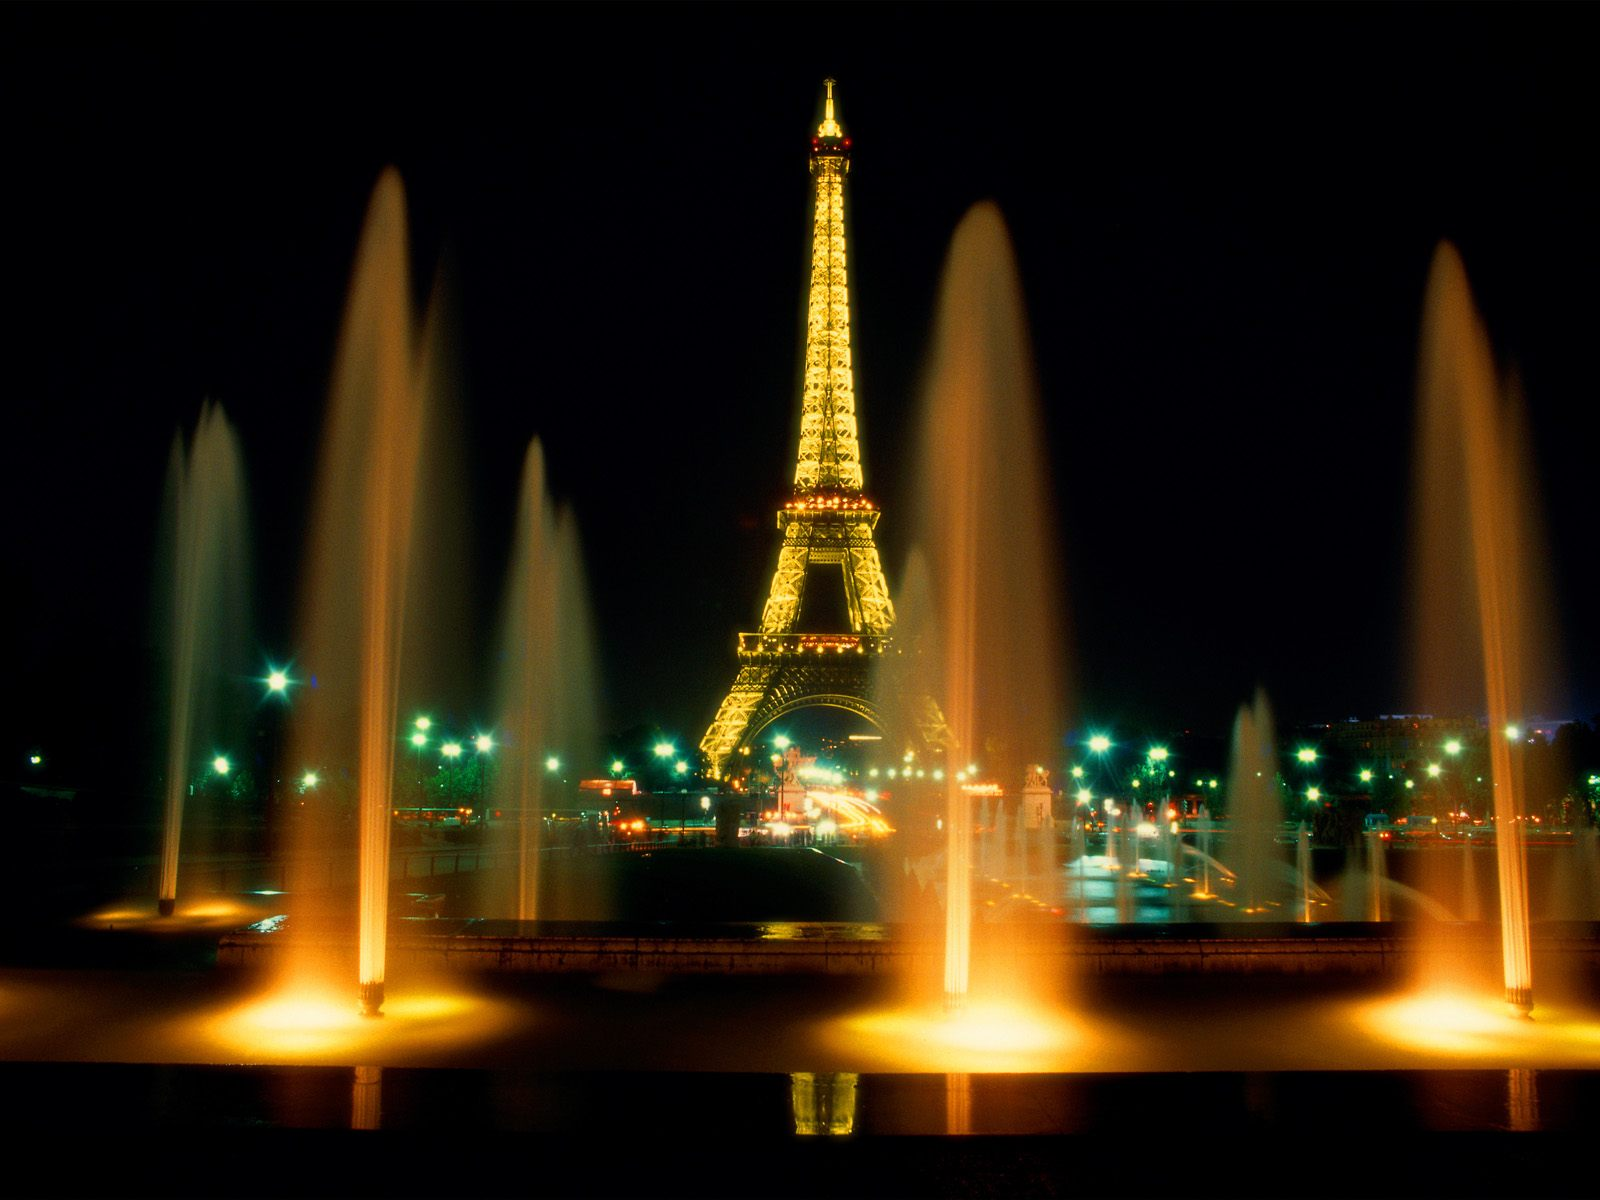 free download celebrations eiffel tower at night hd desktop